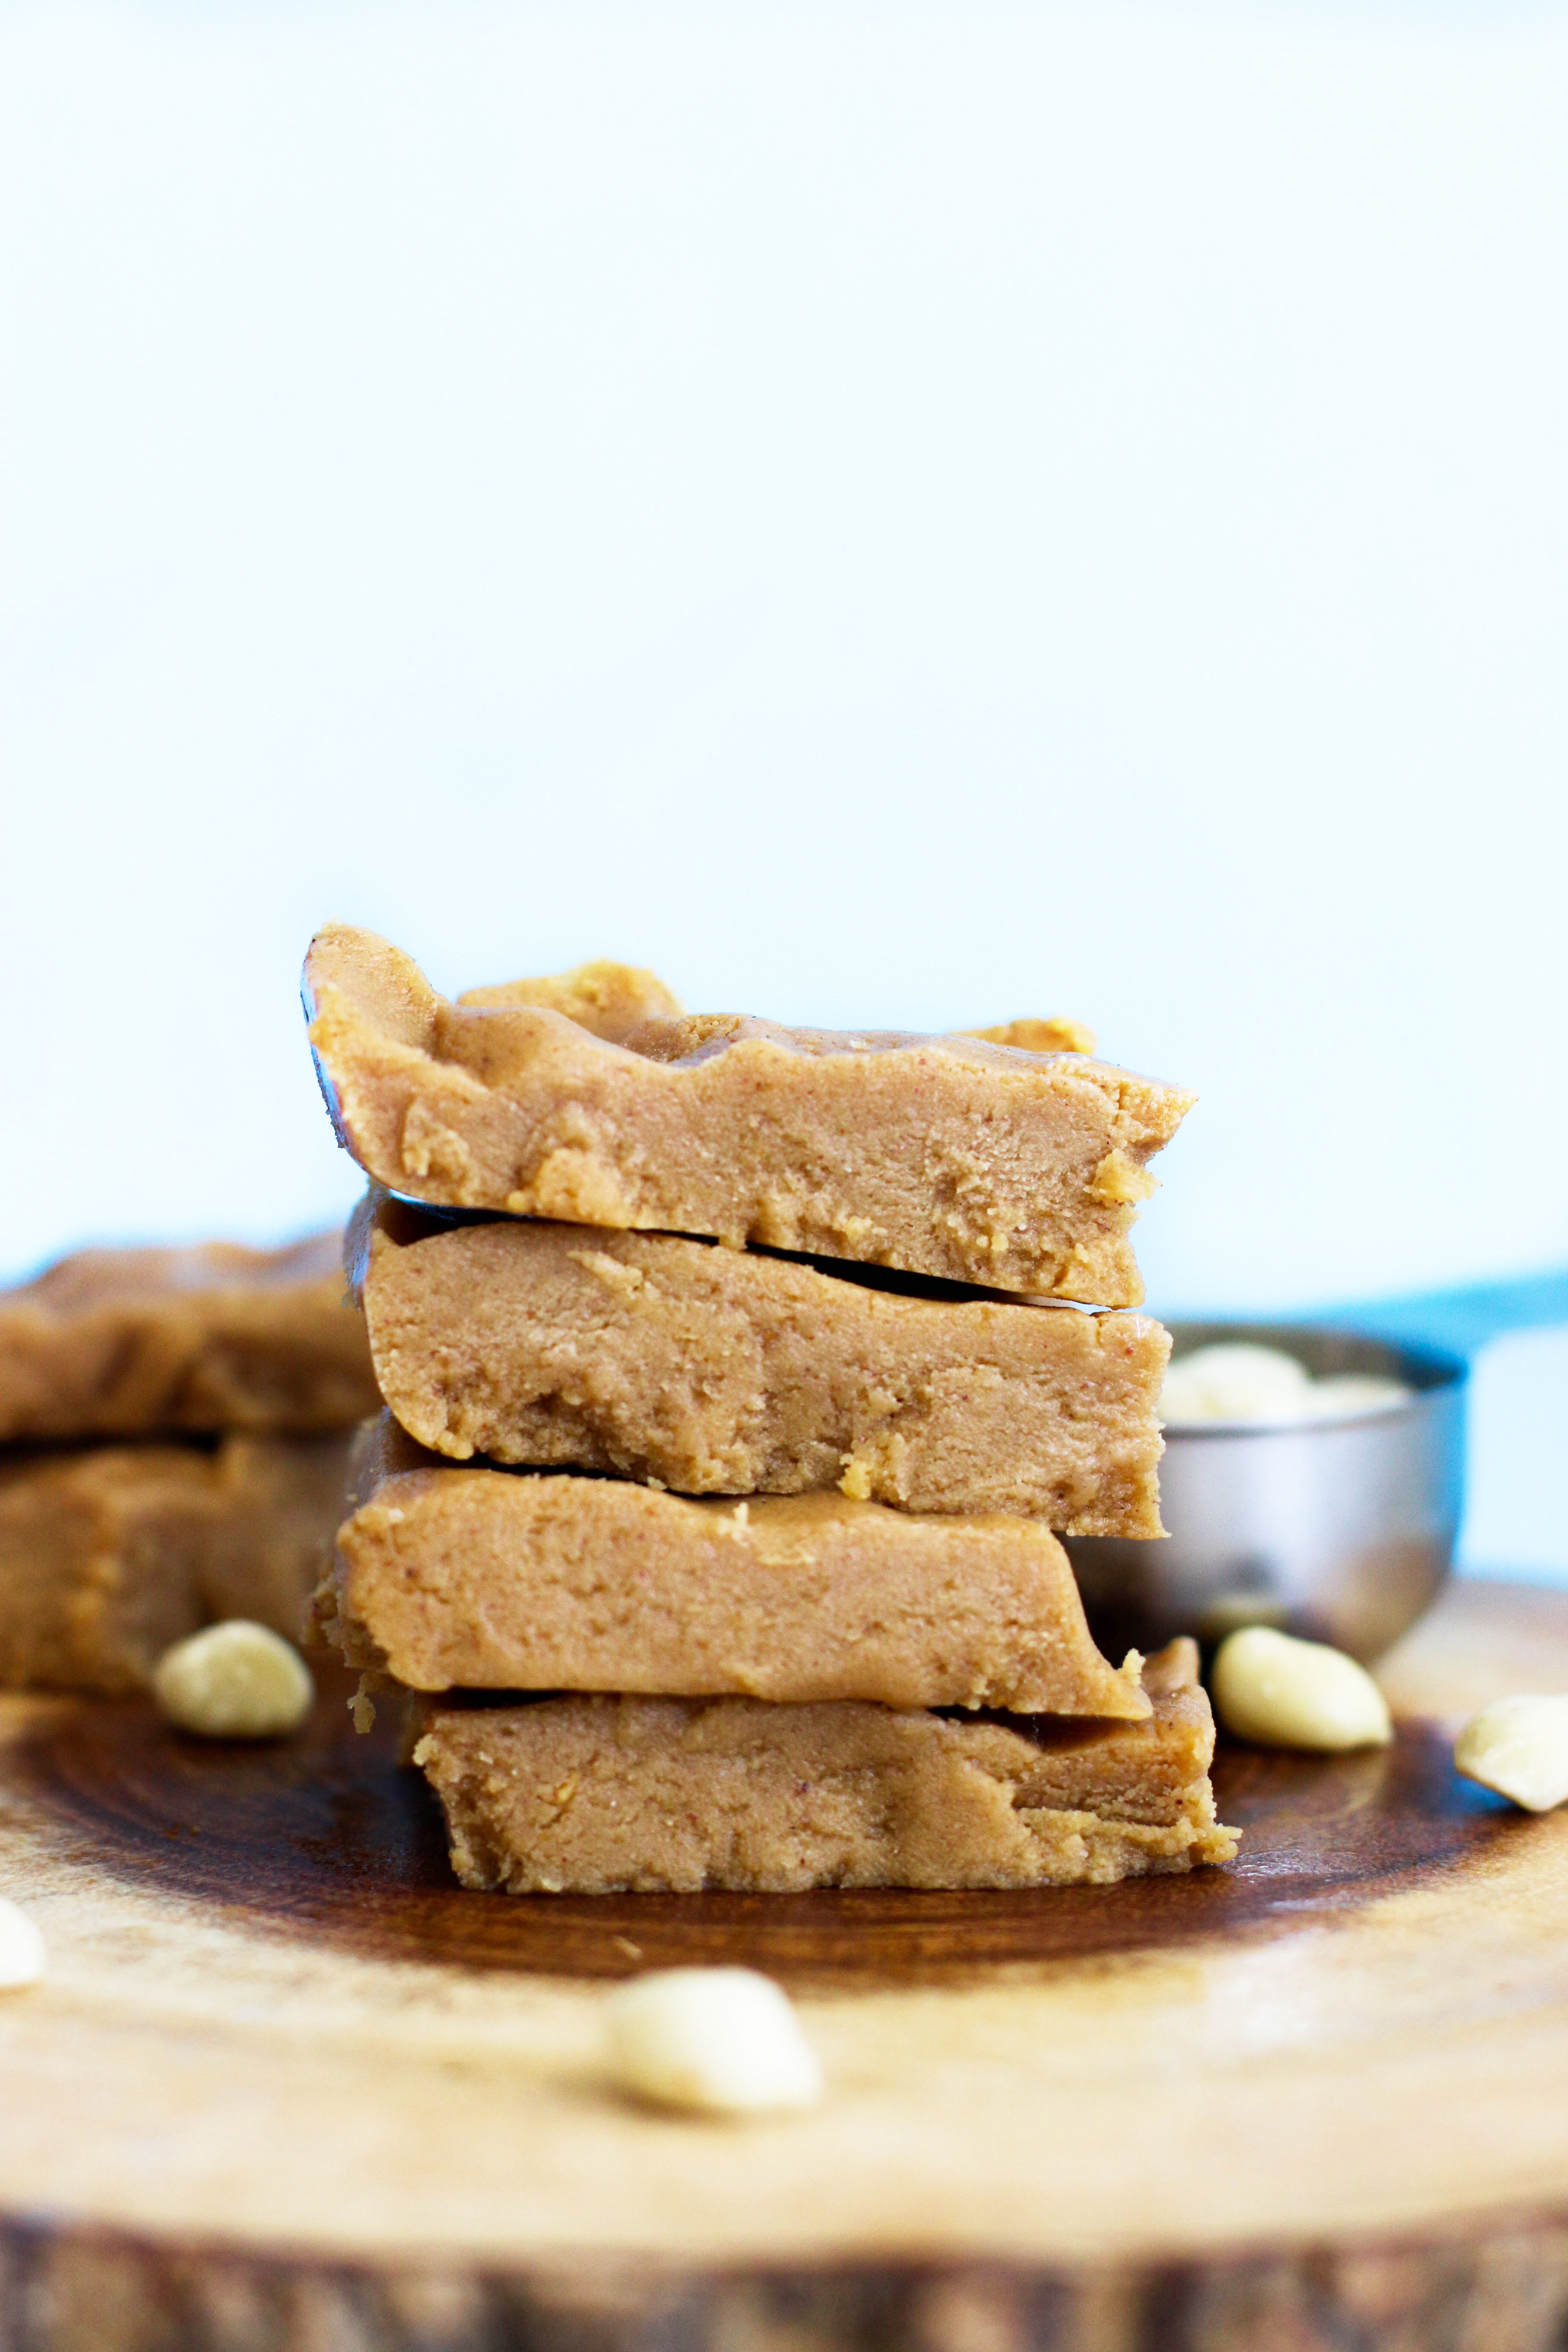 These 5 ingredient peanut butter protein bars are vegan, gluten free, paleo, refined sugar free, and protein packed! Made with simple, wholesome ingredients, they'rethe perfect snack bar.